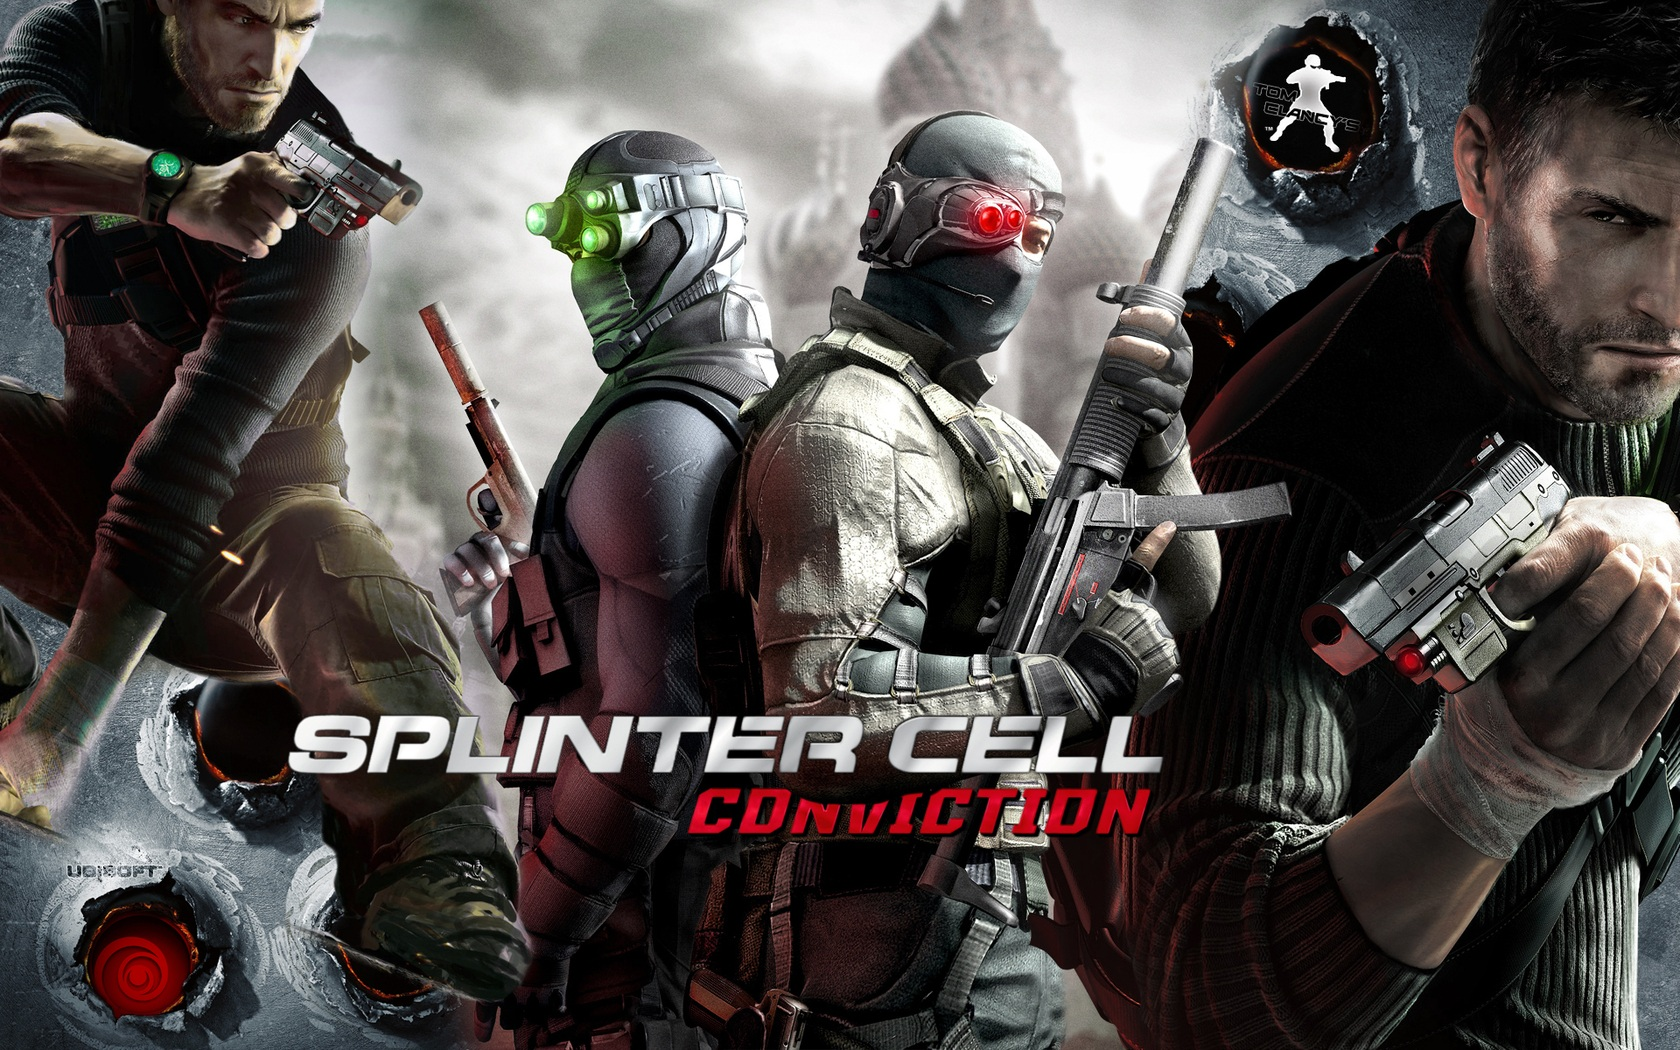 Tom clancy's splinter cell: chaos theory скачать игру торрент.